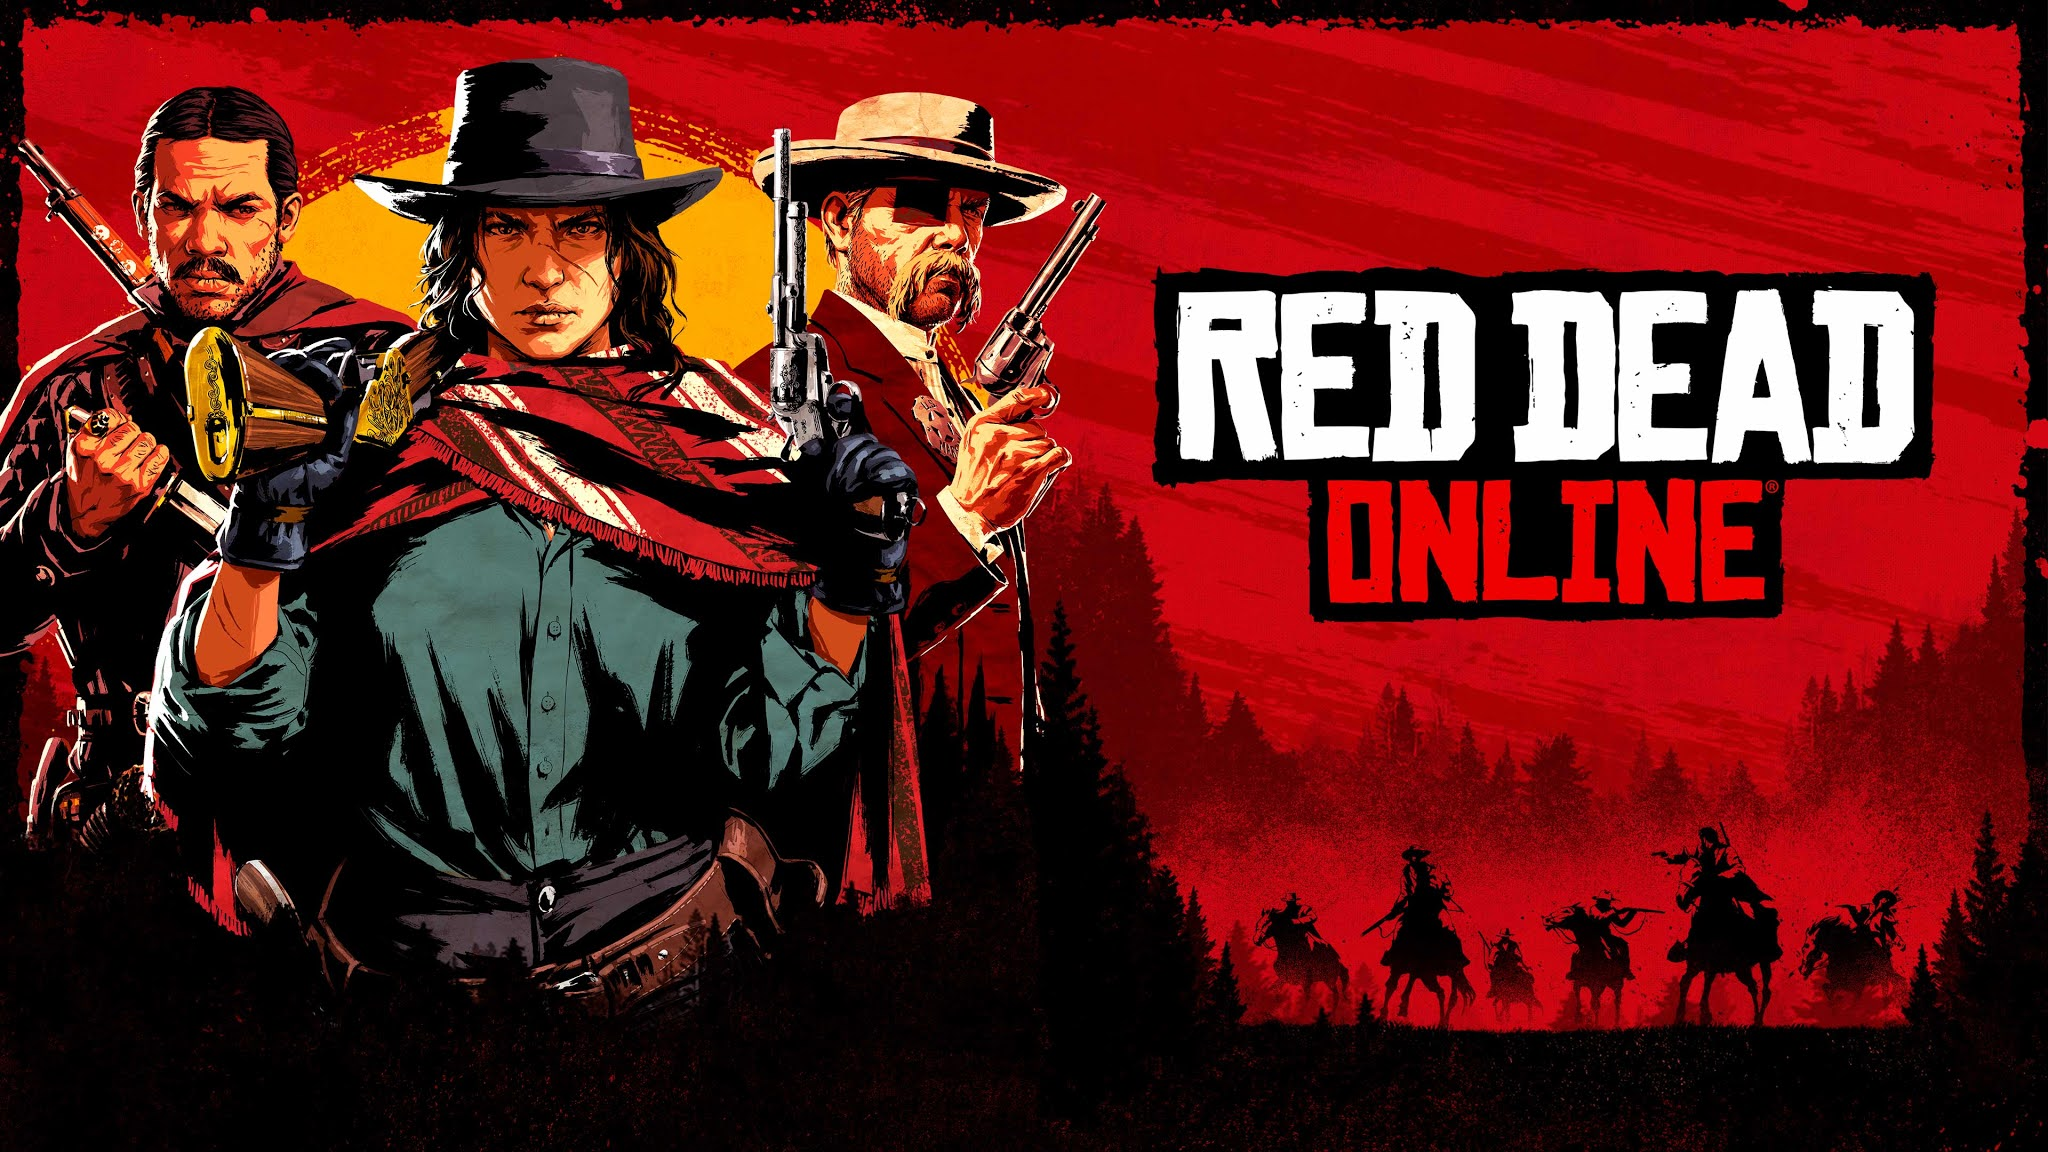 Red Dead Online - Soon heavily reduced as a standalone on Steam & Co